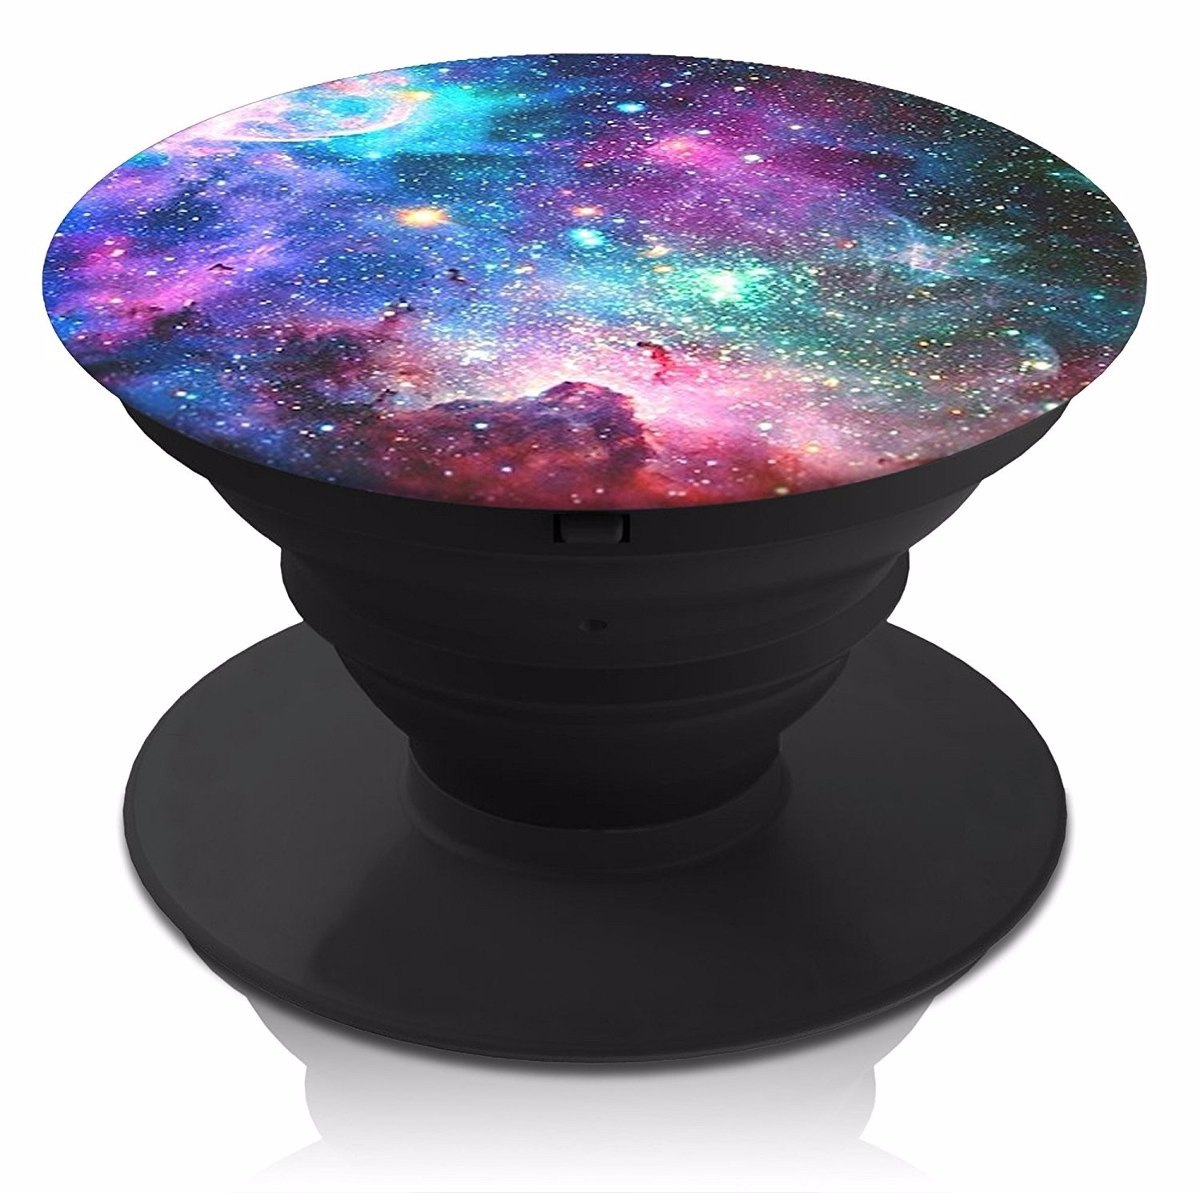 Where Are Popsockets Sold